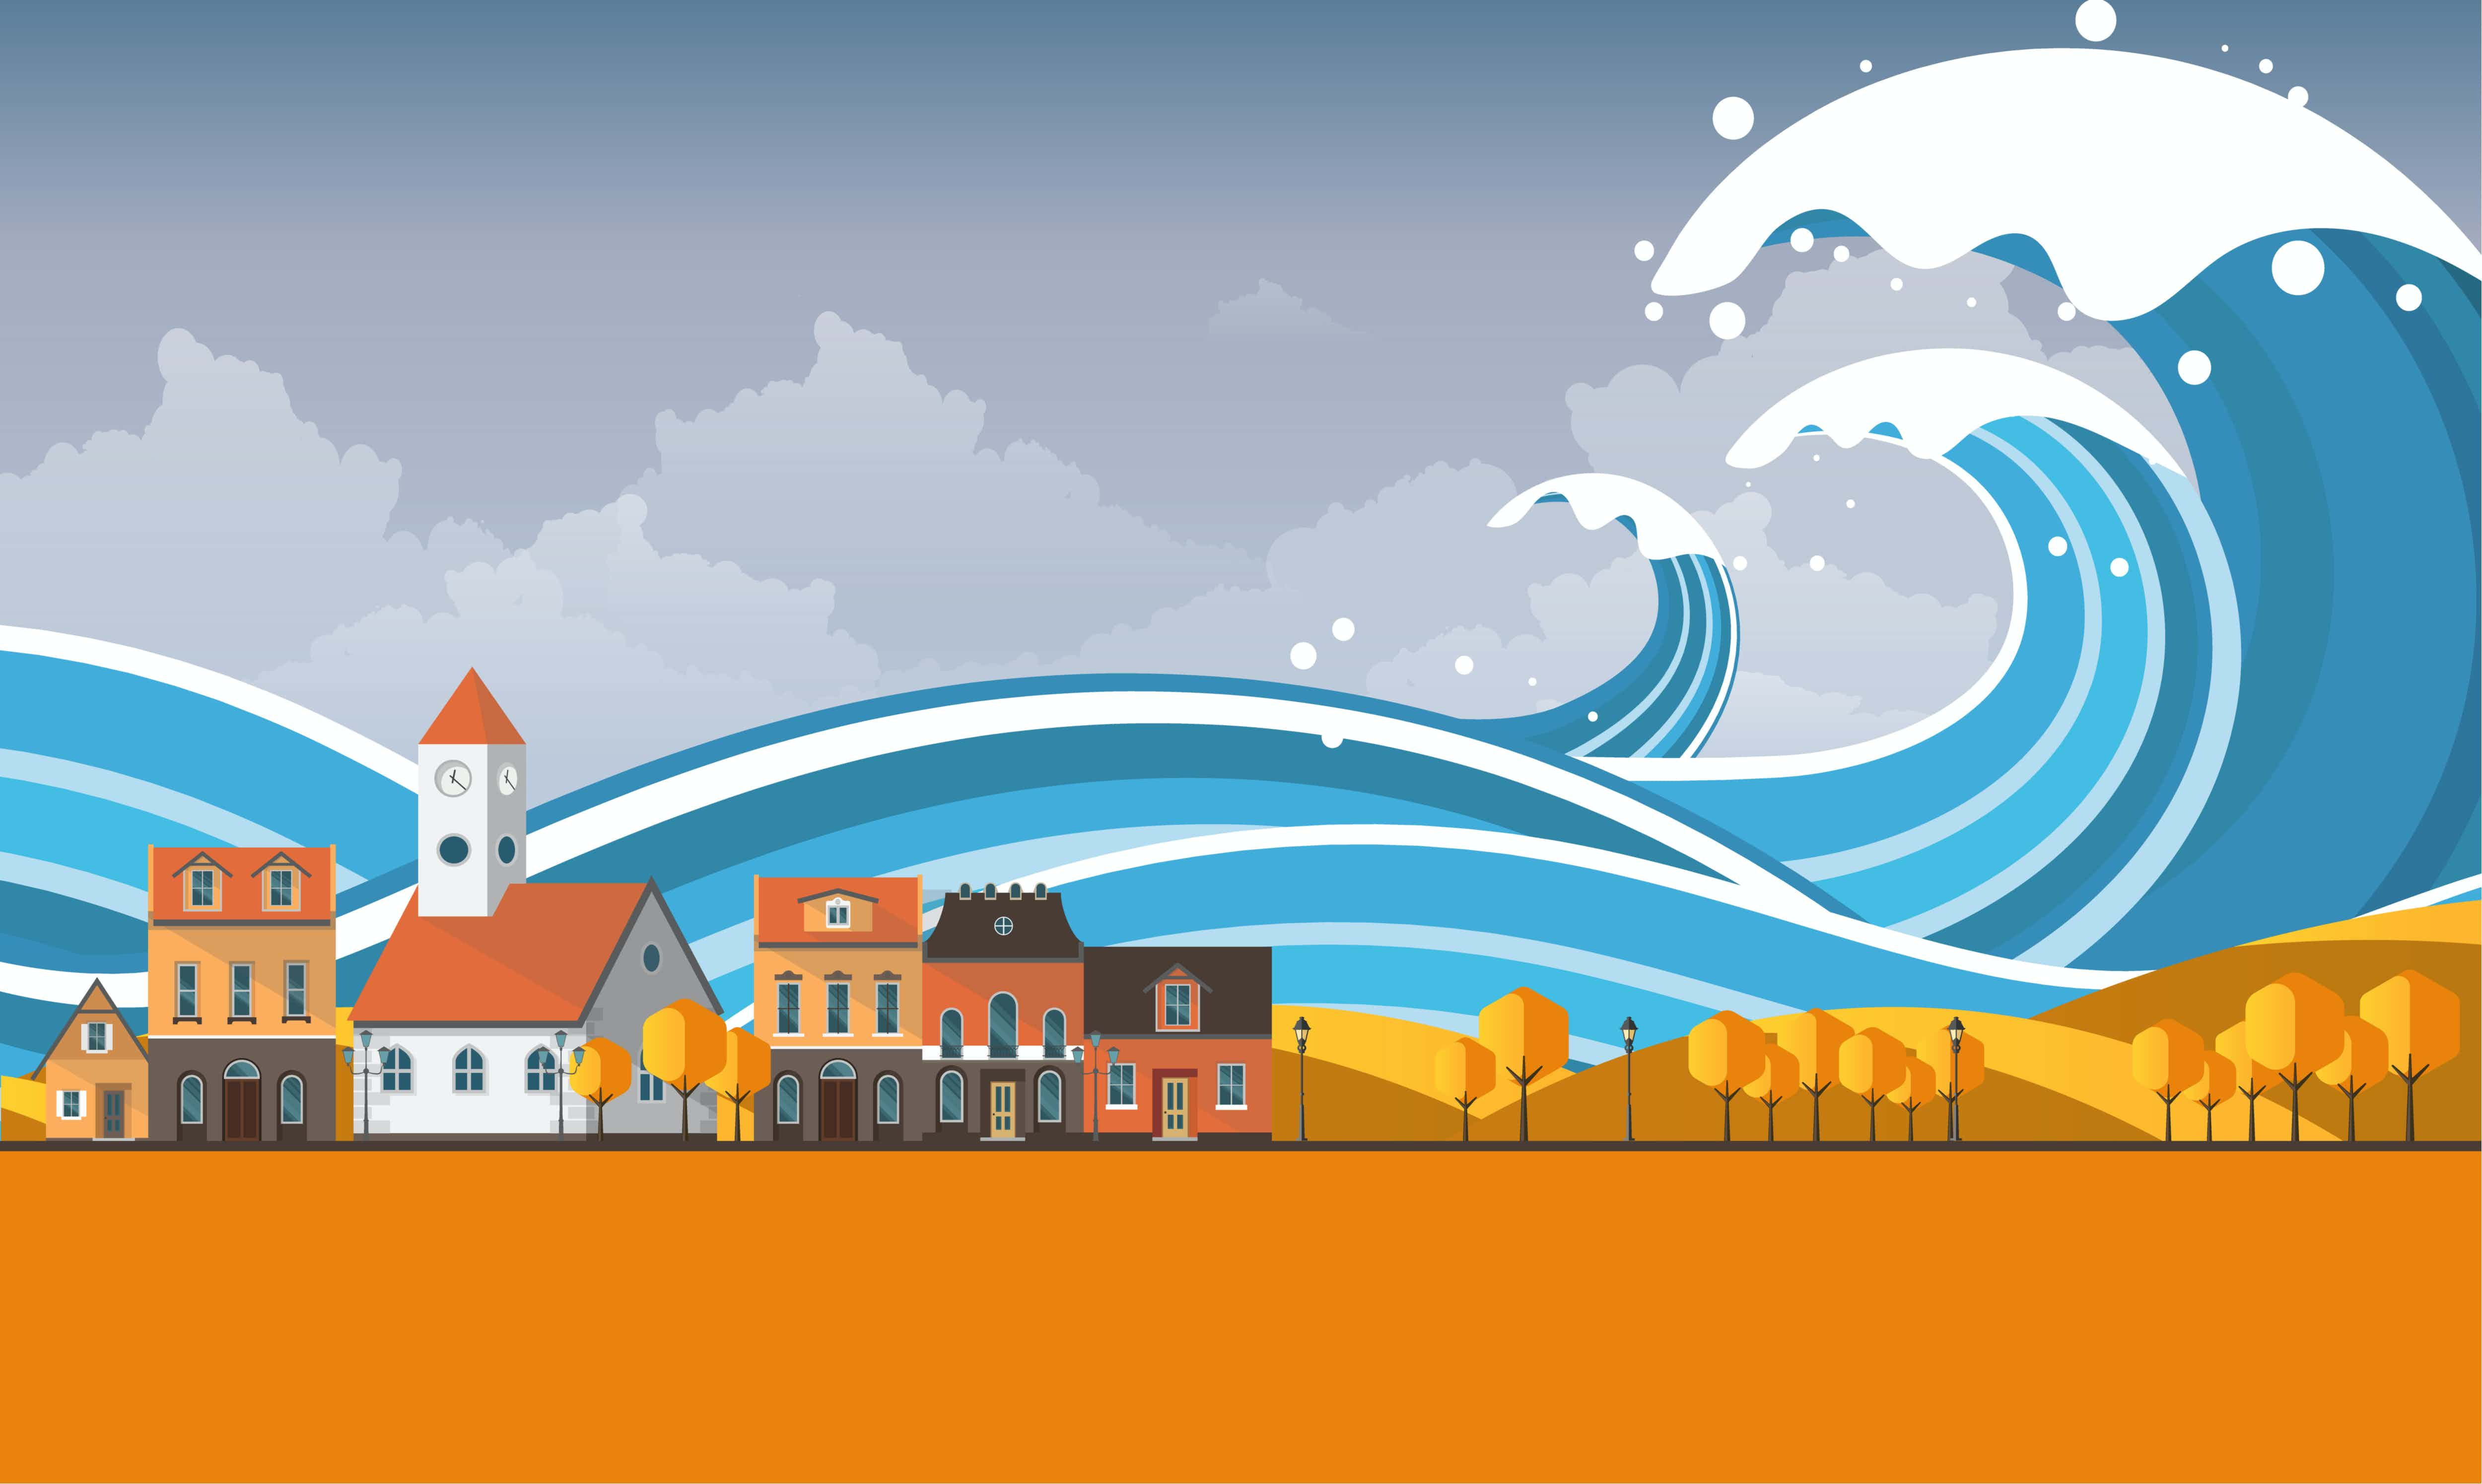 |Top Cities Impacted by Climate Change|